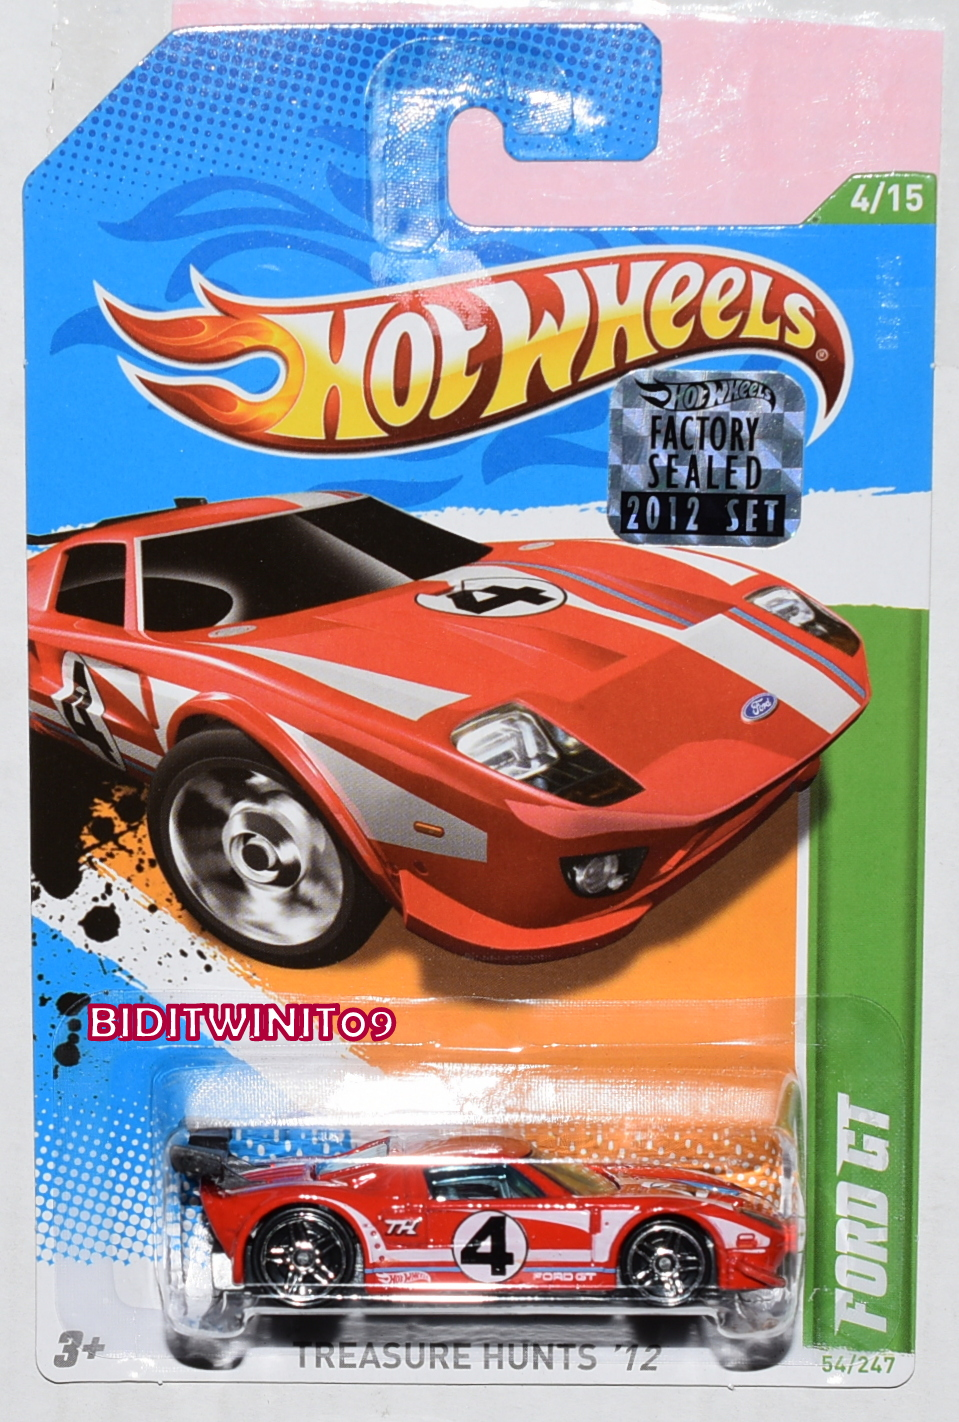 HOT WHEELS 2012 REGULAR TREASURE HUNT FORD GT RED FACTORY SEALED